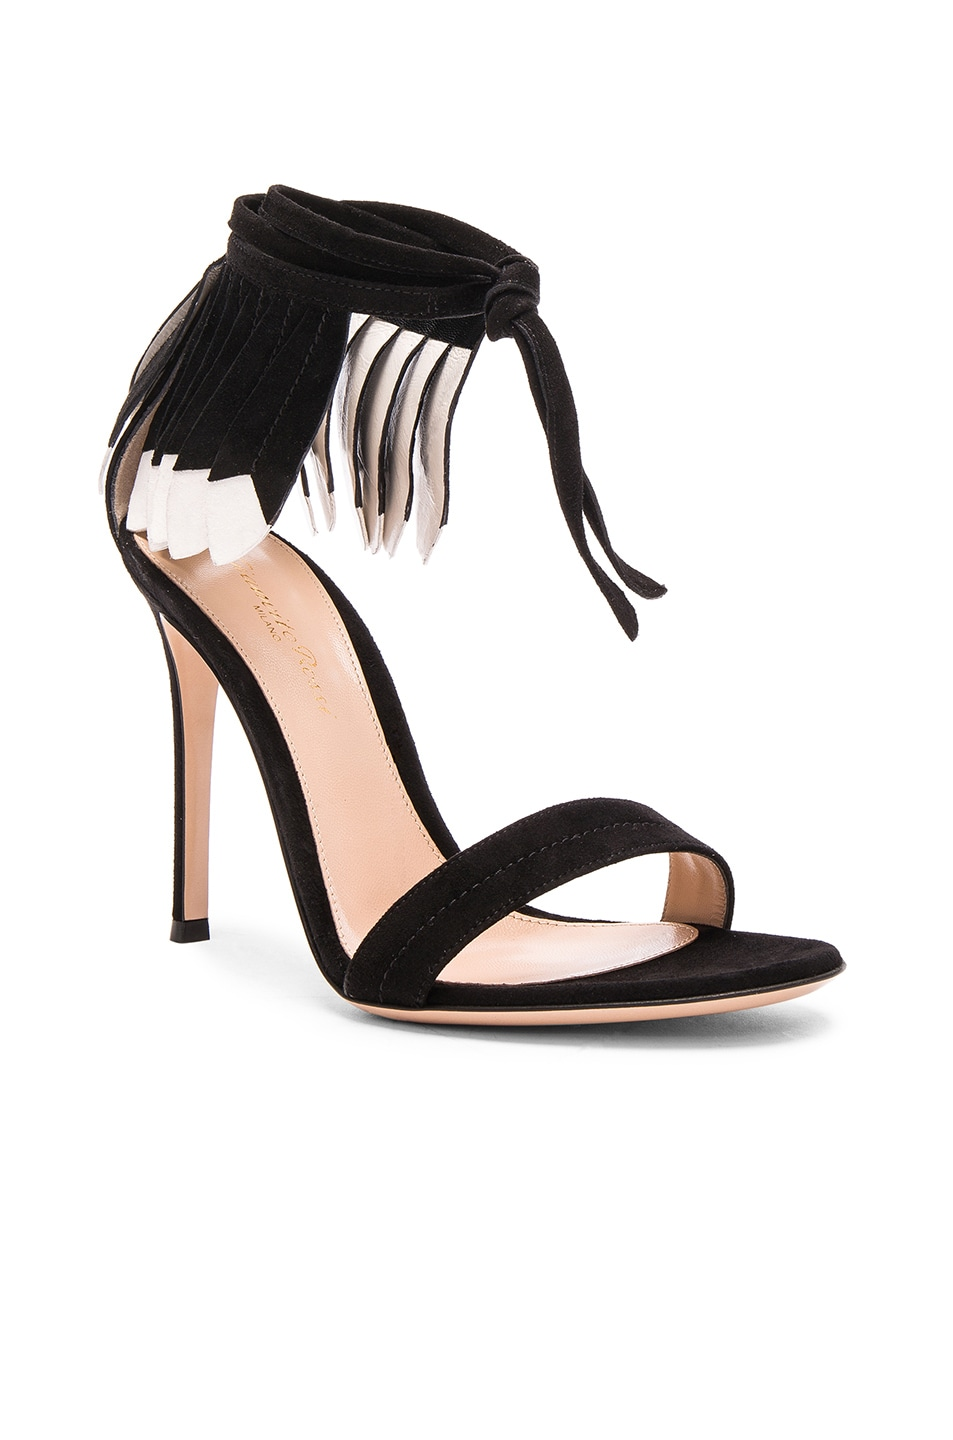 Image 2 of Gianvito Rossi Suede Feather Sandals in Black & White